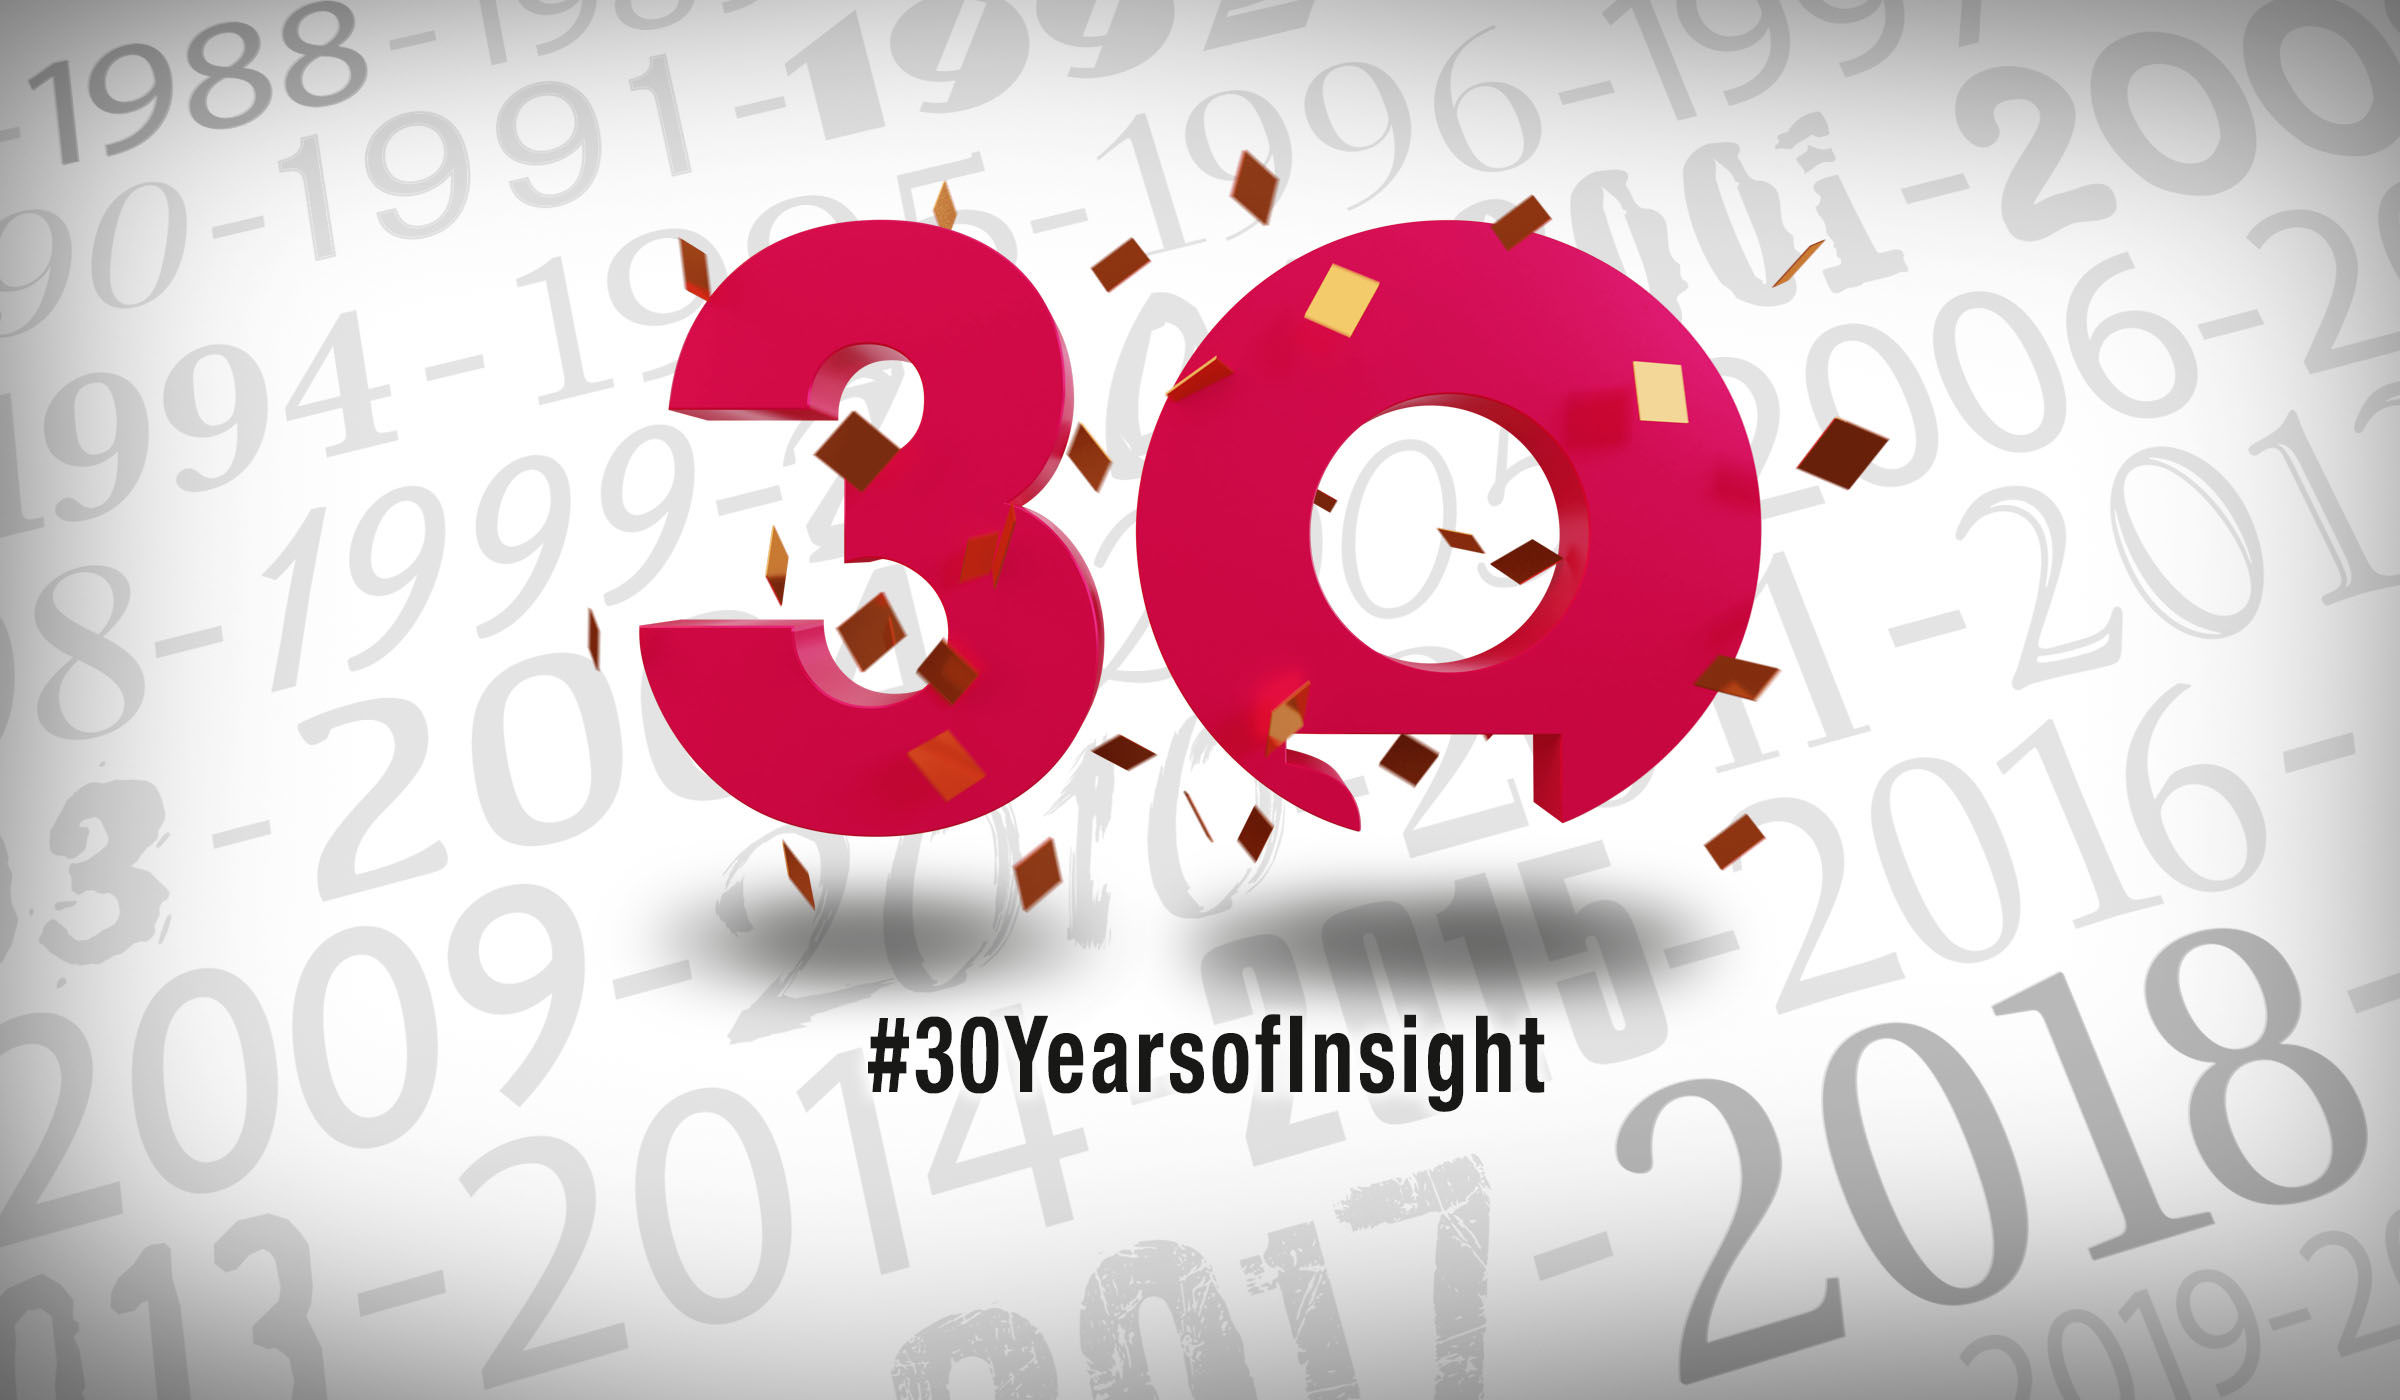 Insight 30 Years